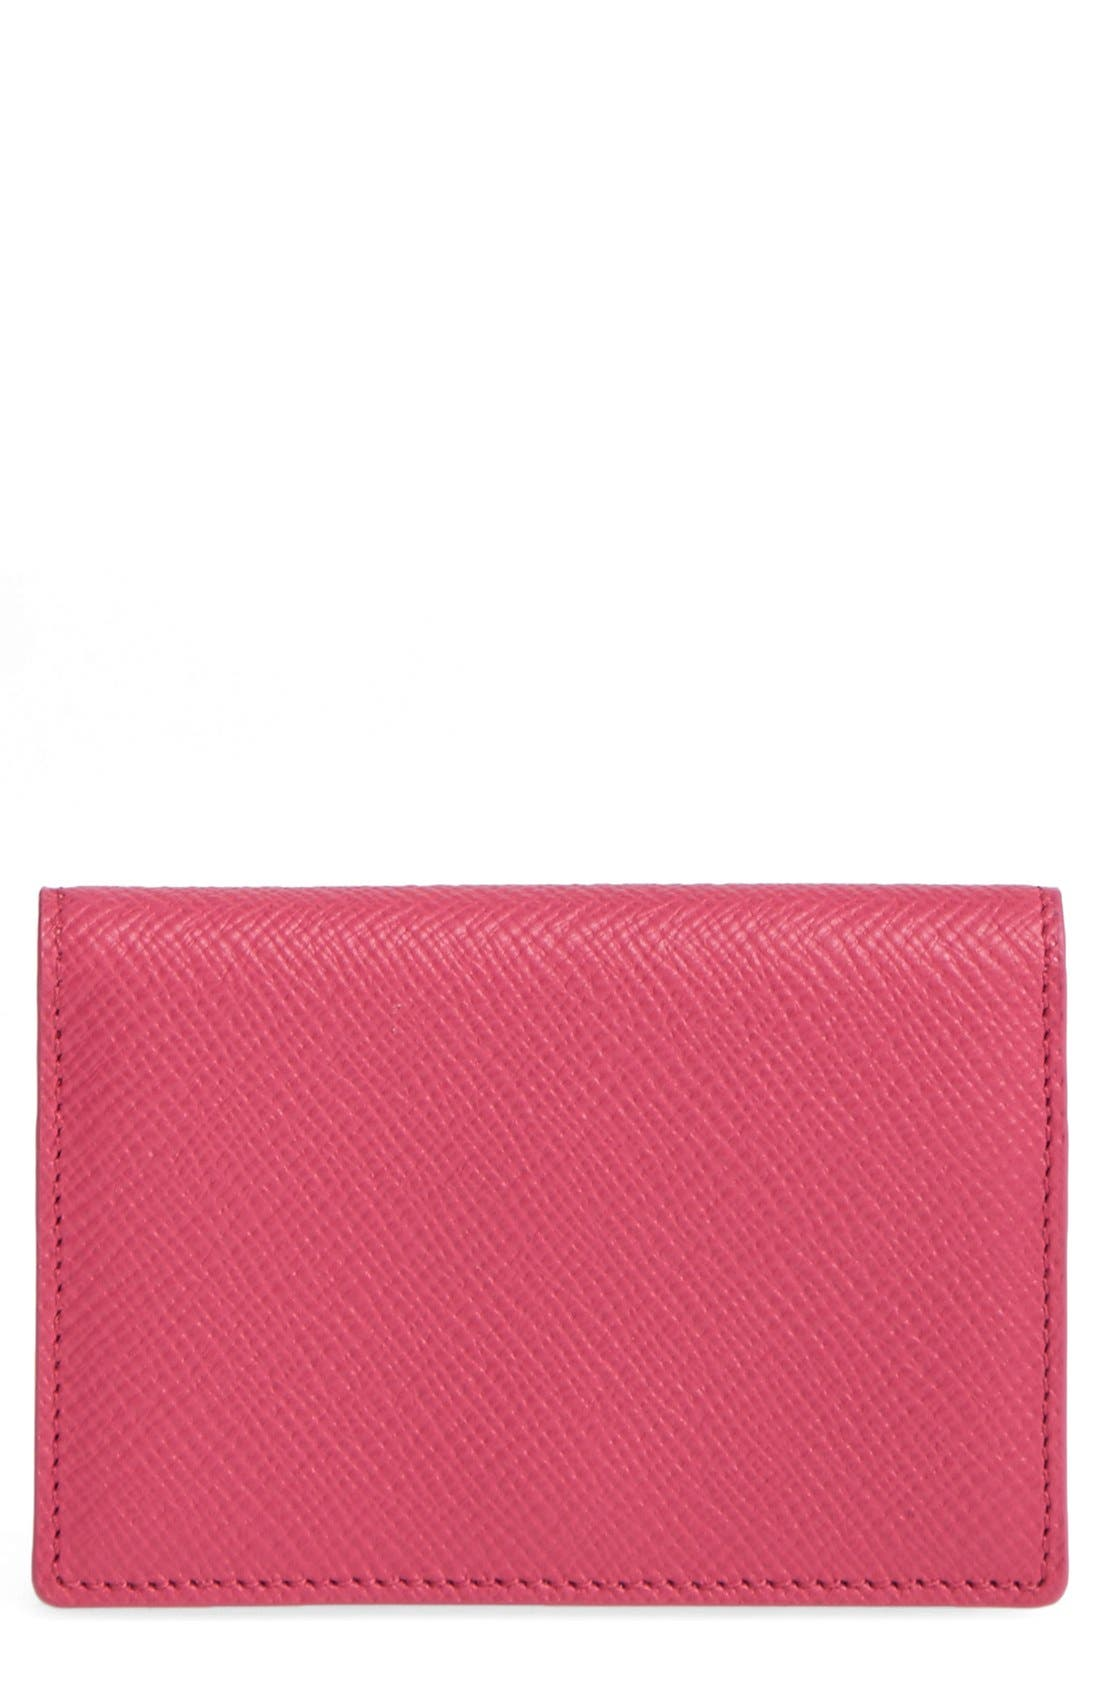 Smythson 'Panama' Card Case